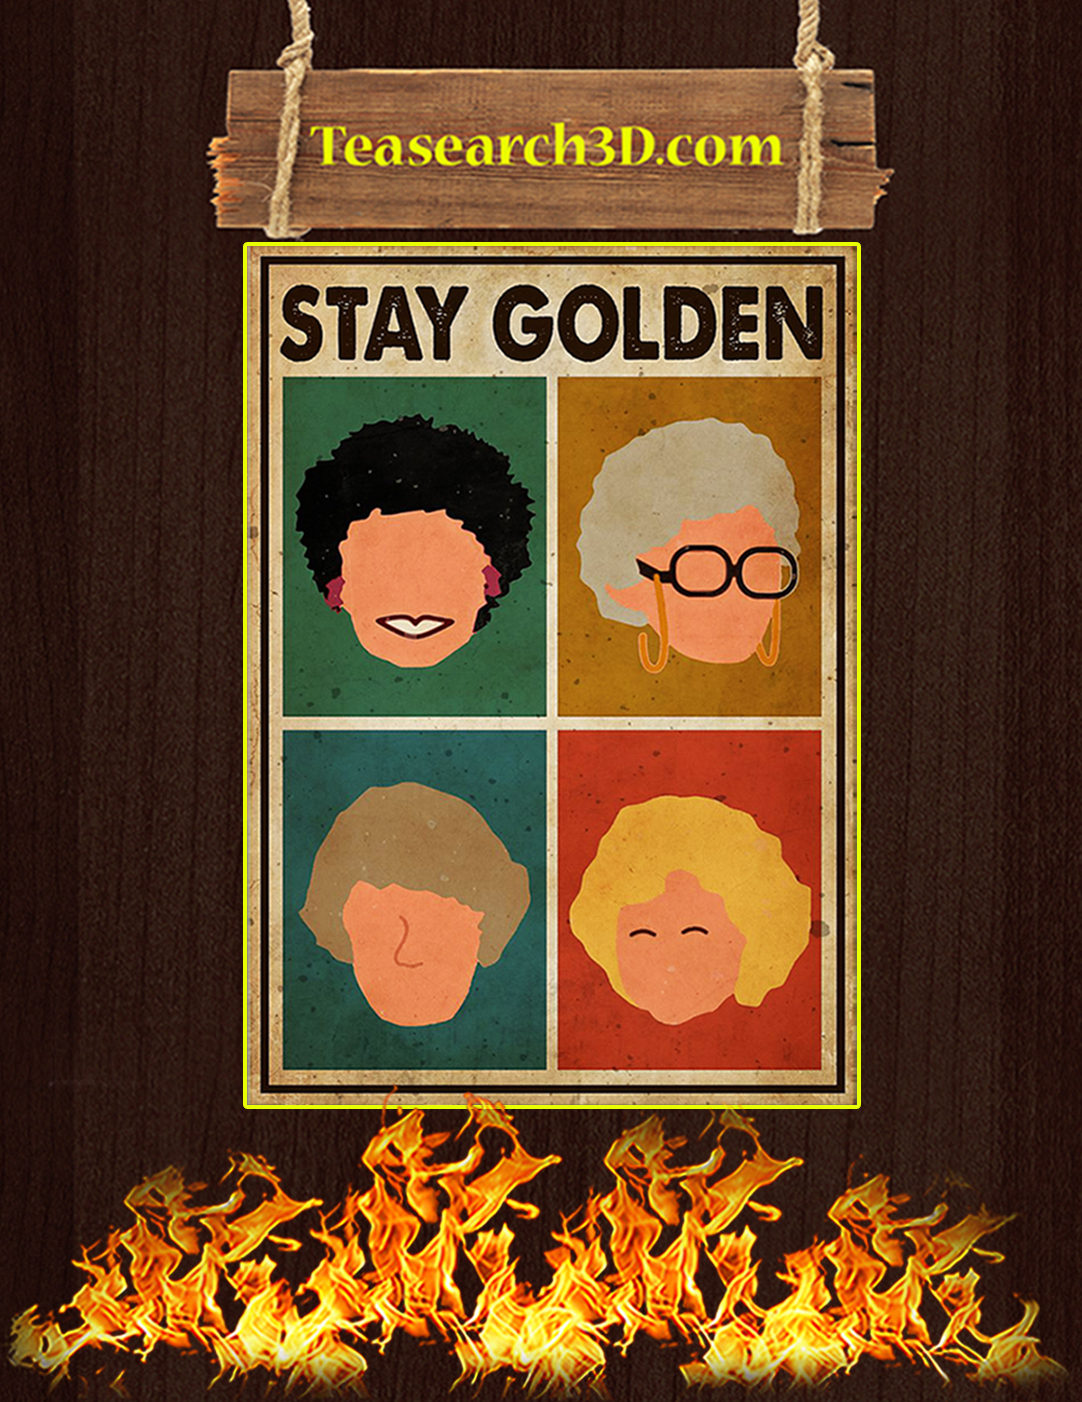 Stay golden poster A2